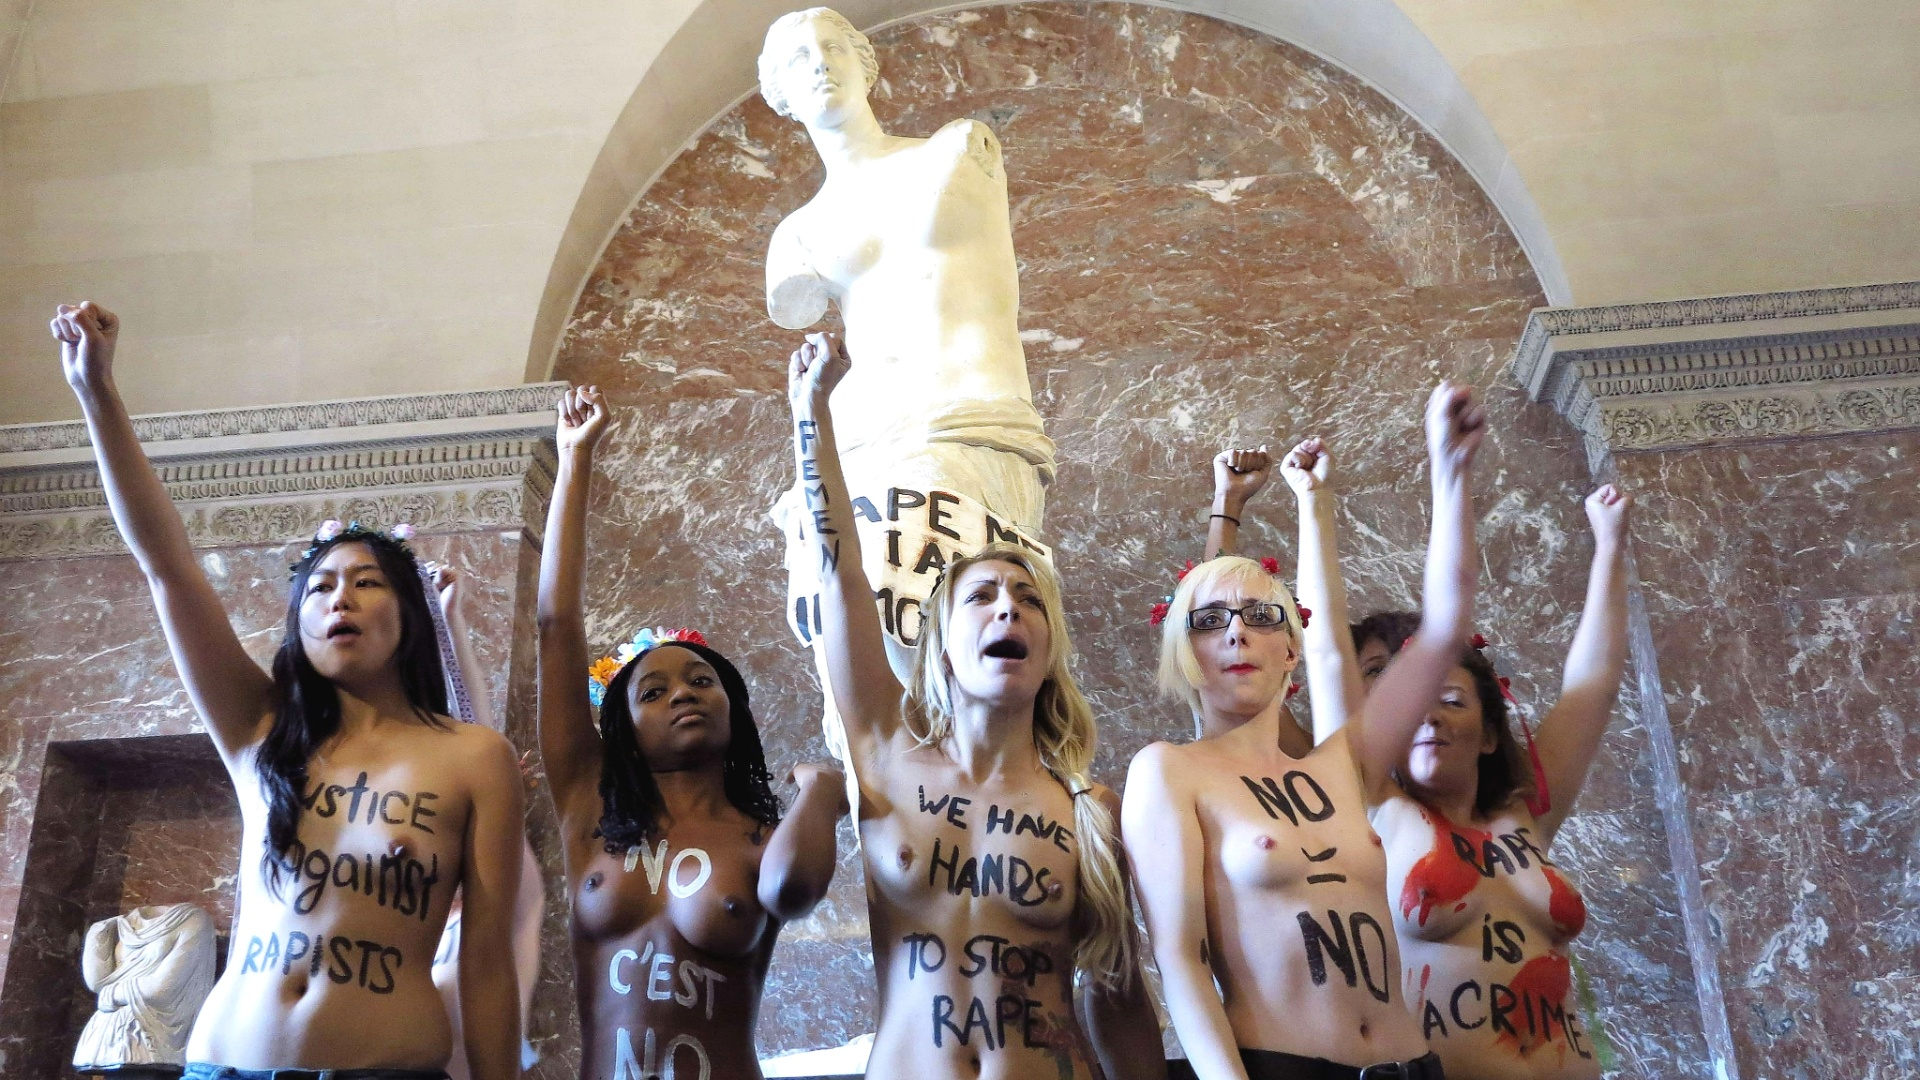 3.out.2012 - Manifestantes do grupo feminista Femen, tiram a roupa nesta quarta-feira (3), em frente  esttua de Venus de Milo, no museu do Louvre, em Paris (Frana), como forma de protesto contra polticas desfavorveis s mulheres